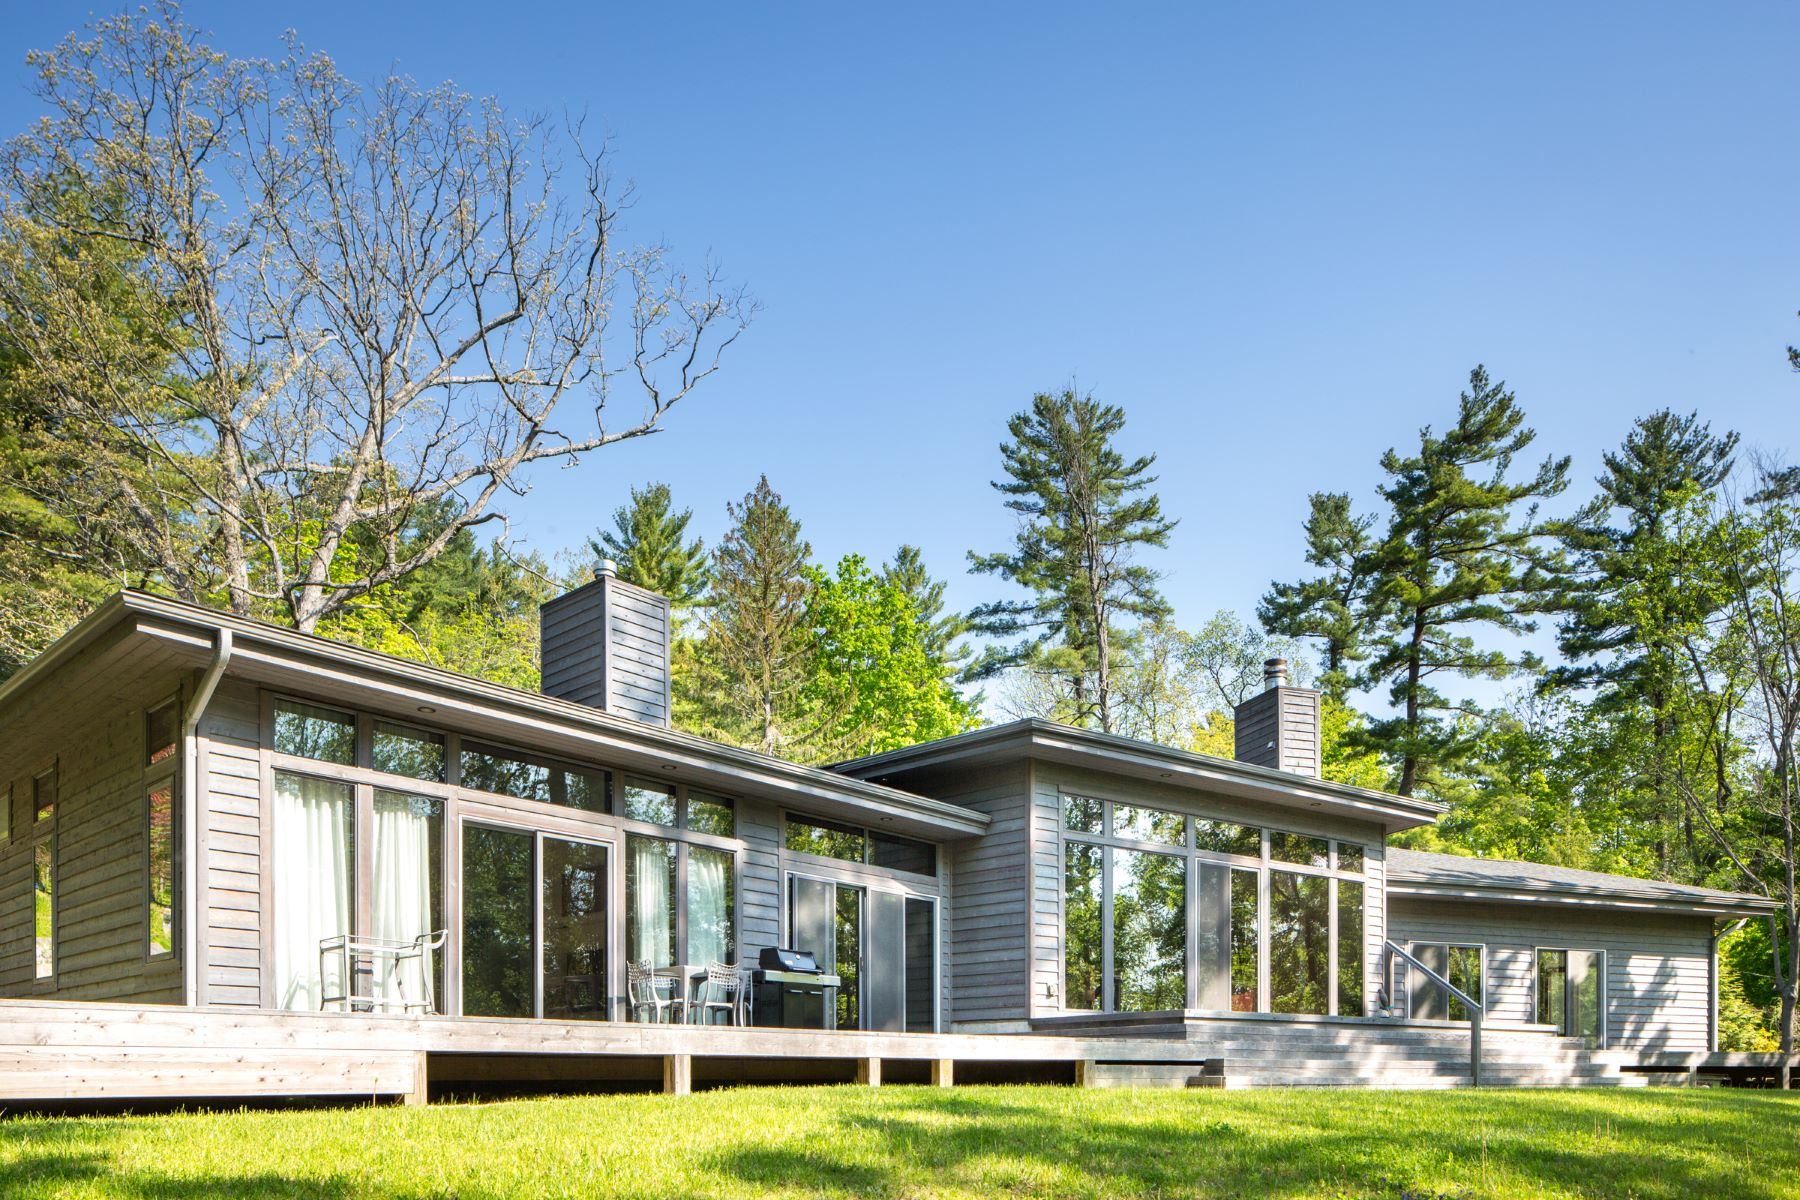 단독 가정 주택 용 매매 에 Chic, Custom-designed Contemporary on The Hill 15 Berkshire Heights Rd Great Barrington, 매사추세츠, 01230 미국